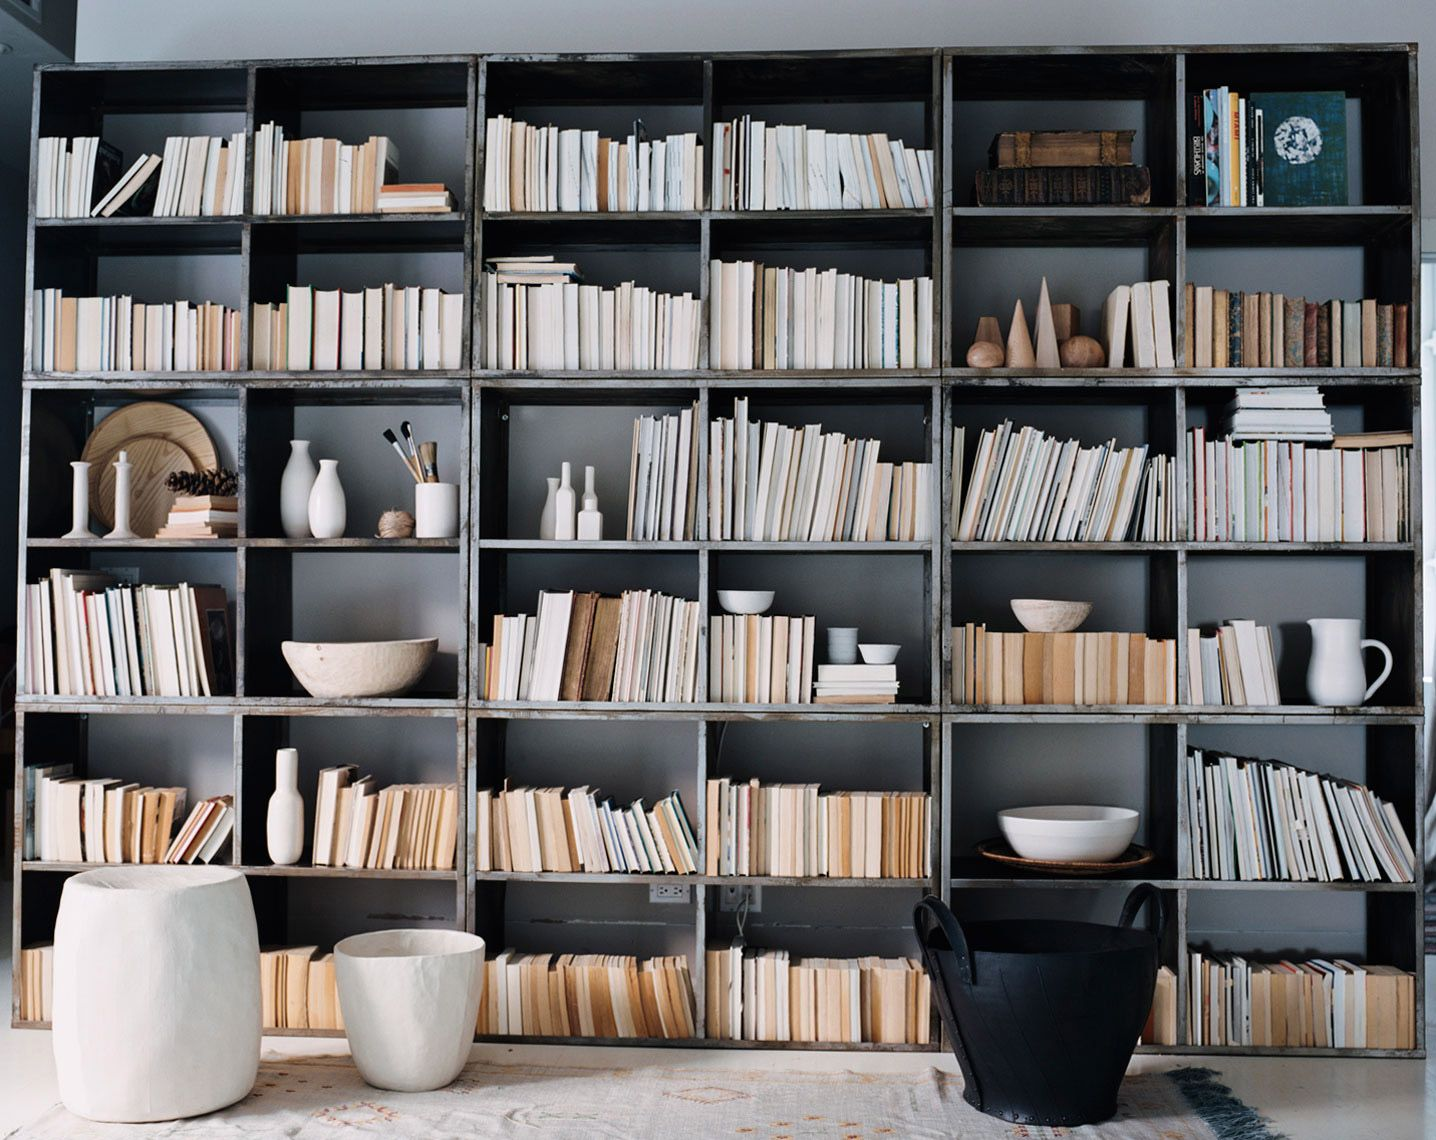 Pottery and books: a perfect marriage in the hands of interior stylist Hilary Robertson